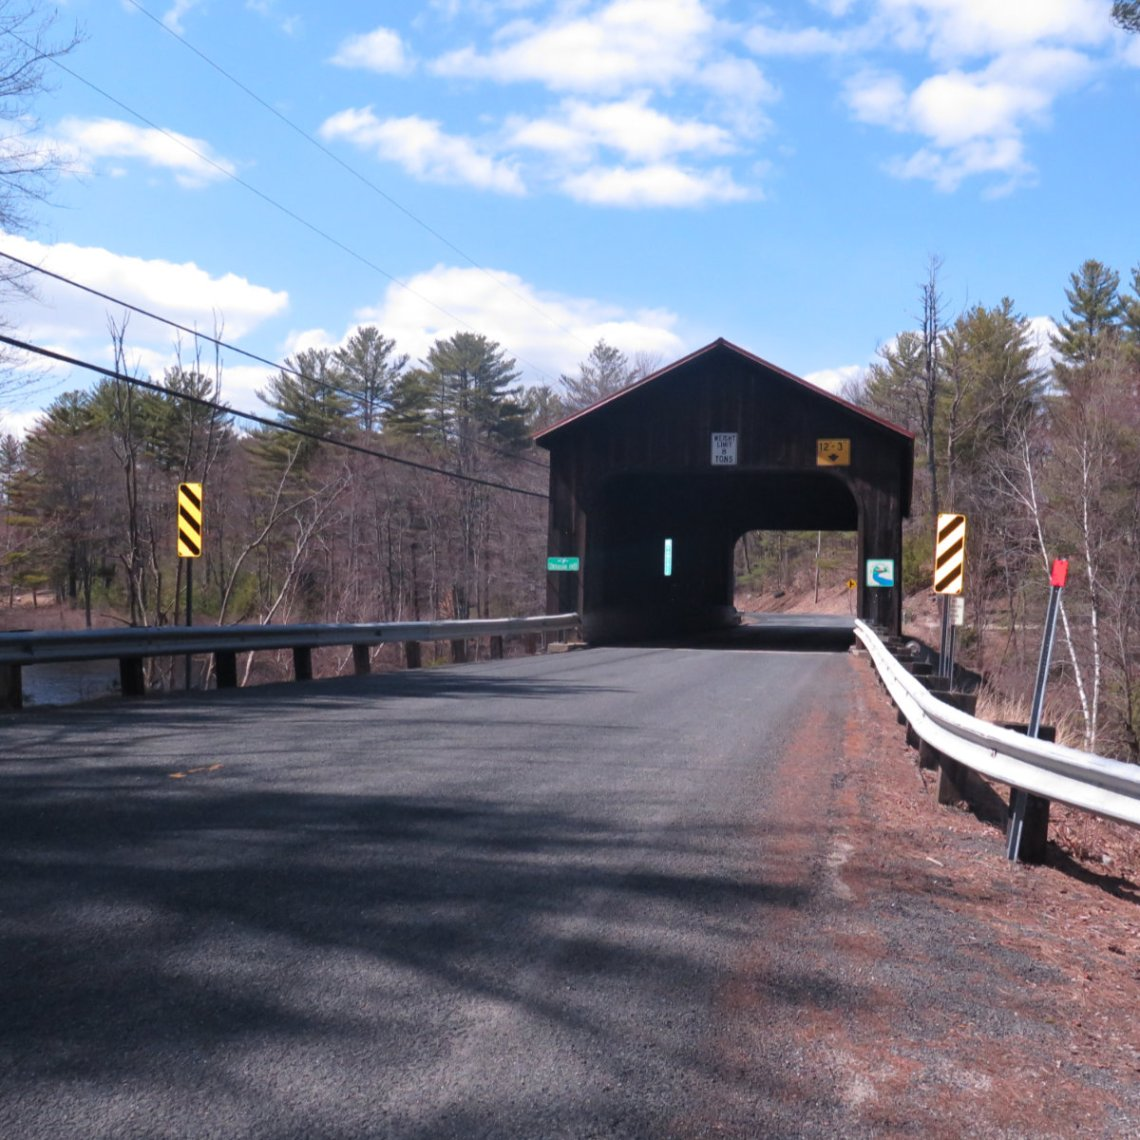 1-Contoocook-Covered-Bridge-20200415